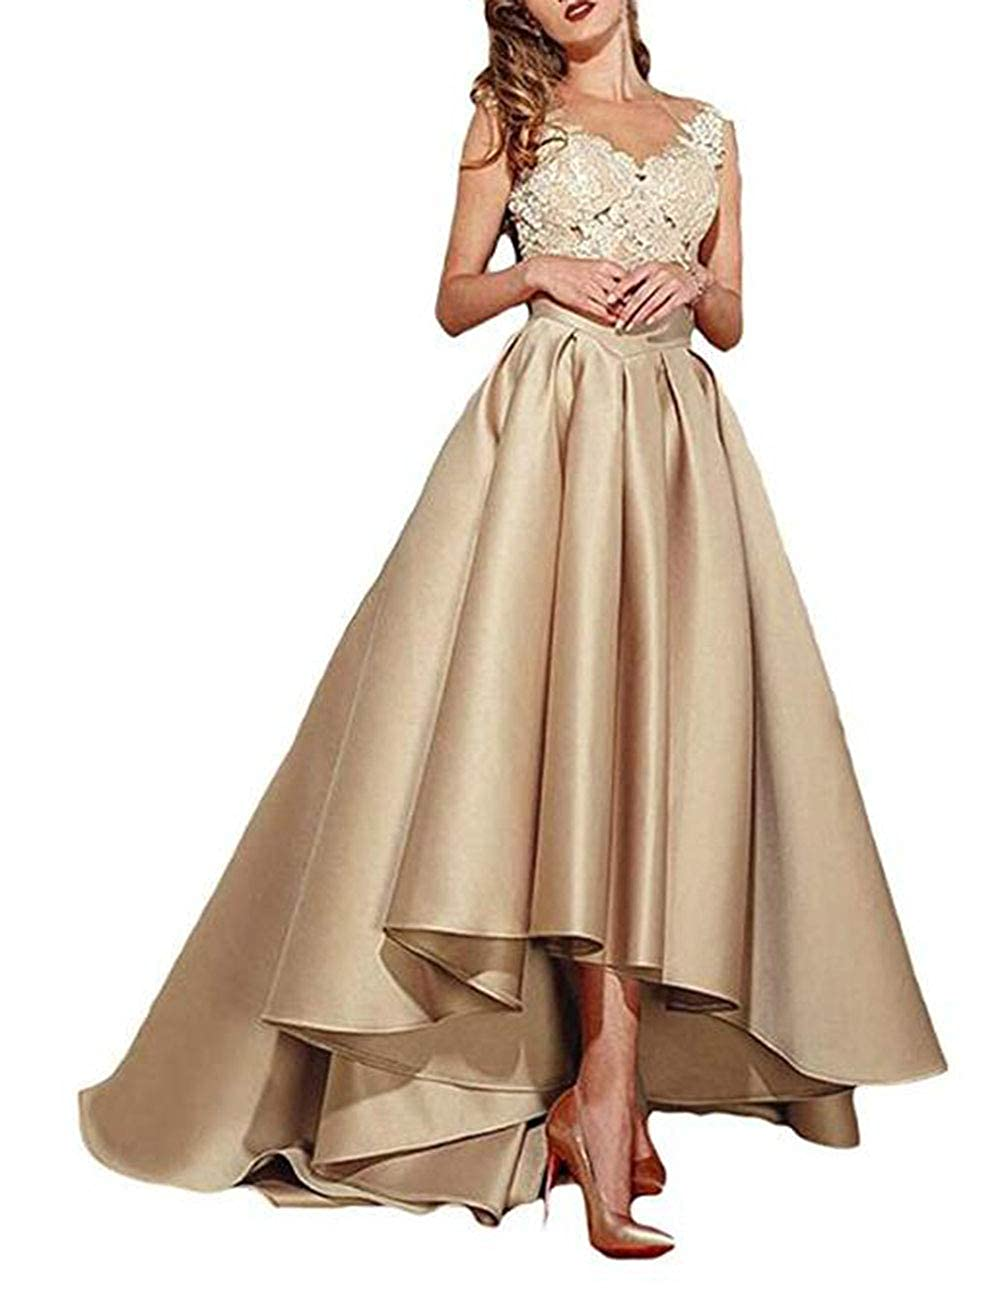 Champagne alilith.Z Sexy Lace Appliques Prom Dresses High Low Formal Evening Dresses Party Gowns for Women